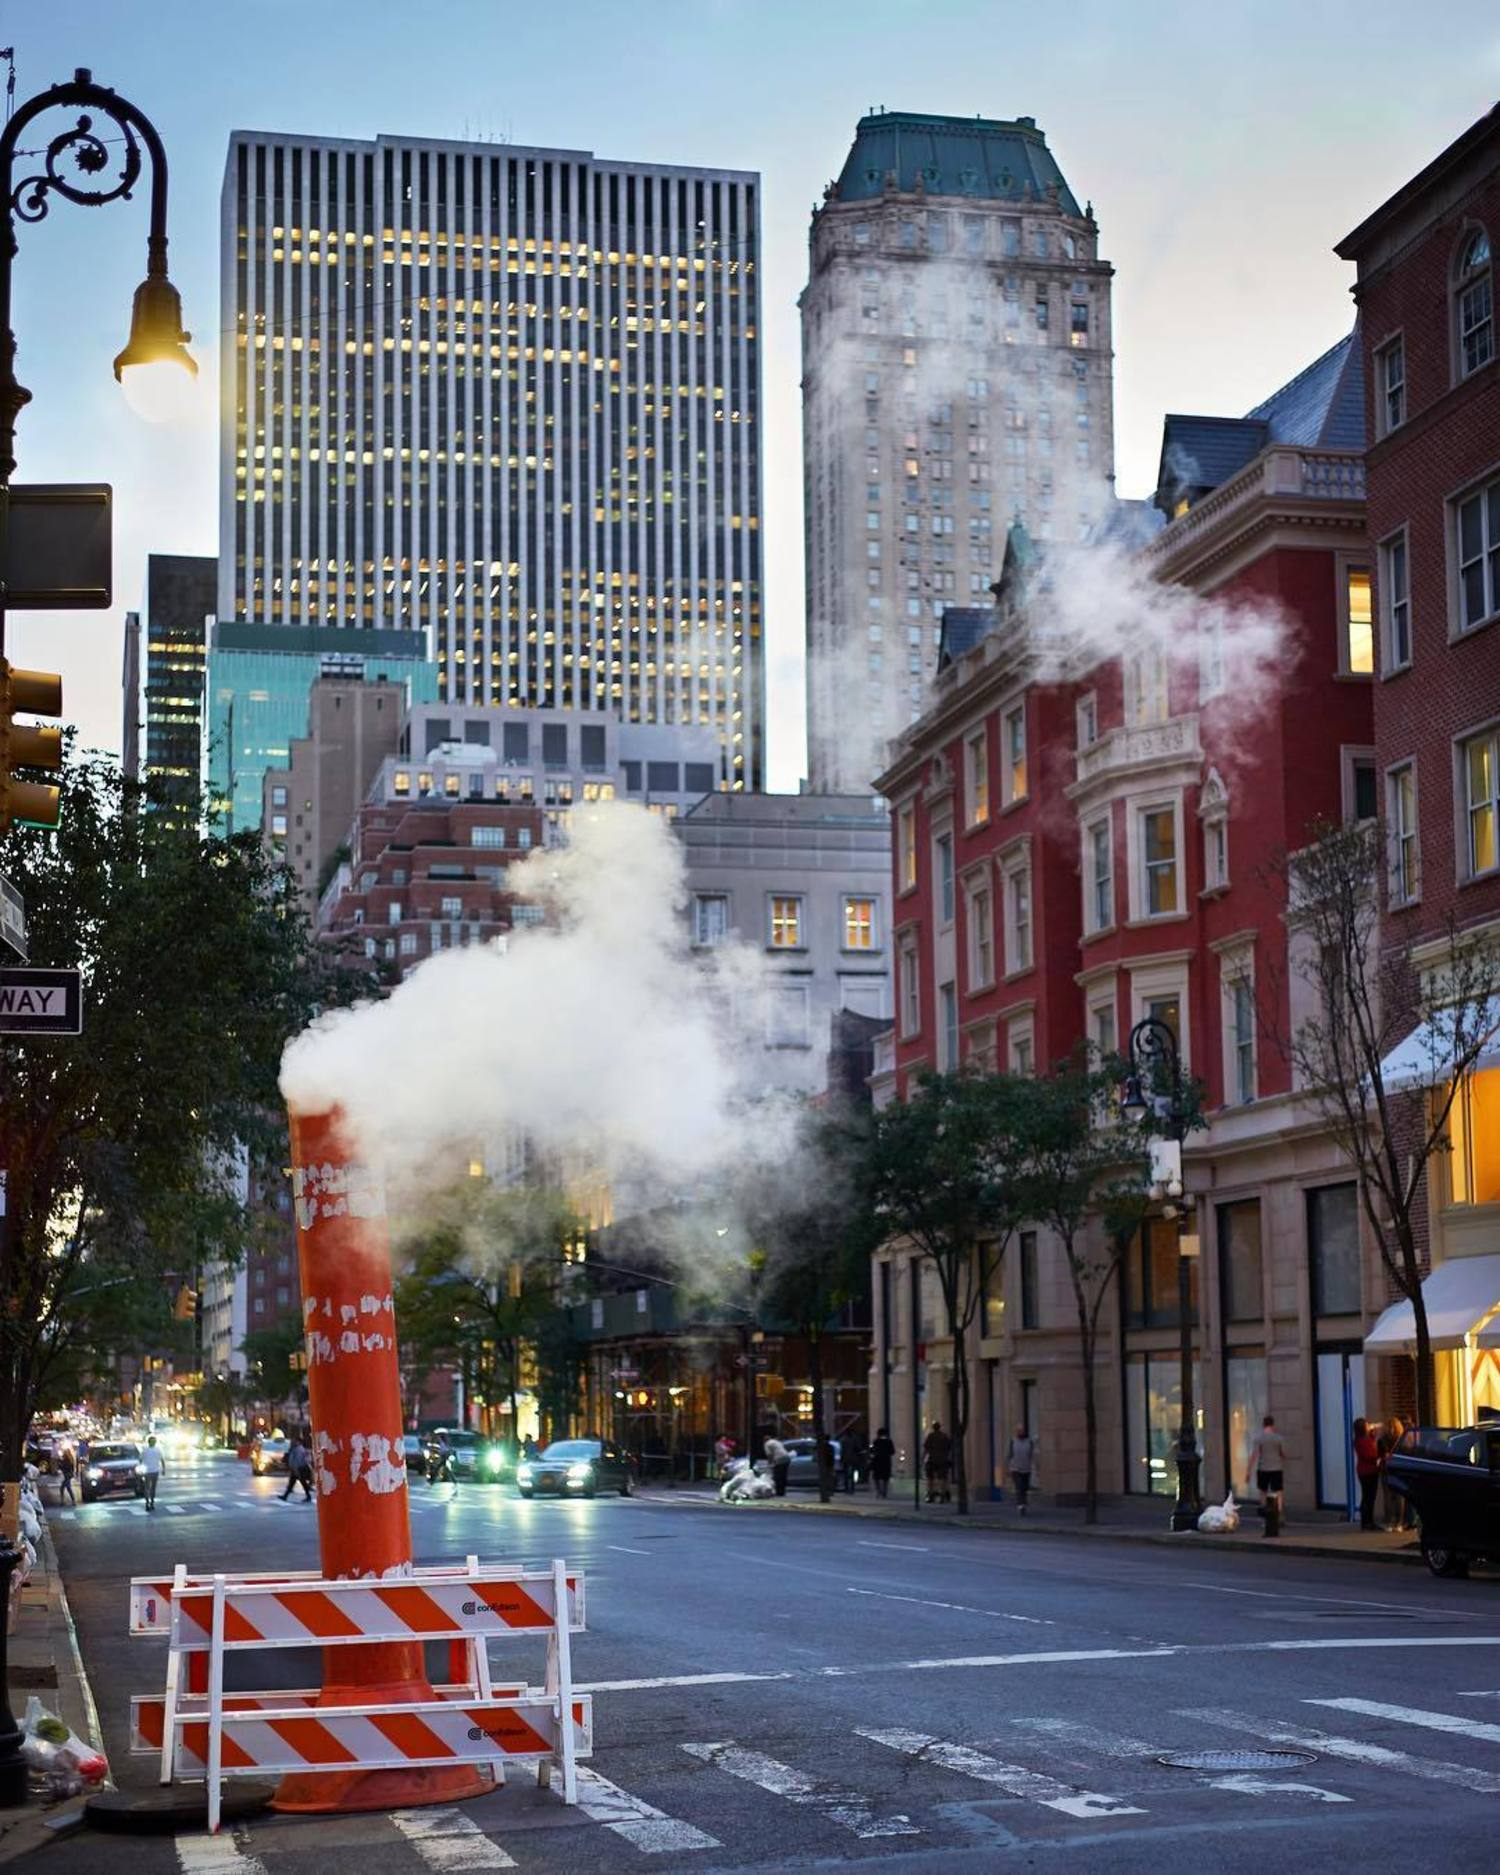 Steam vents in New York, New York